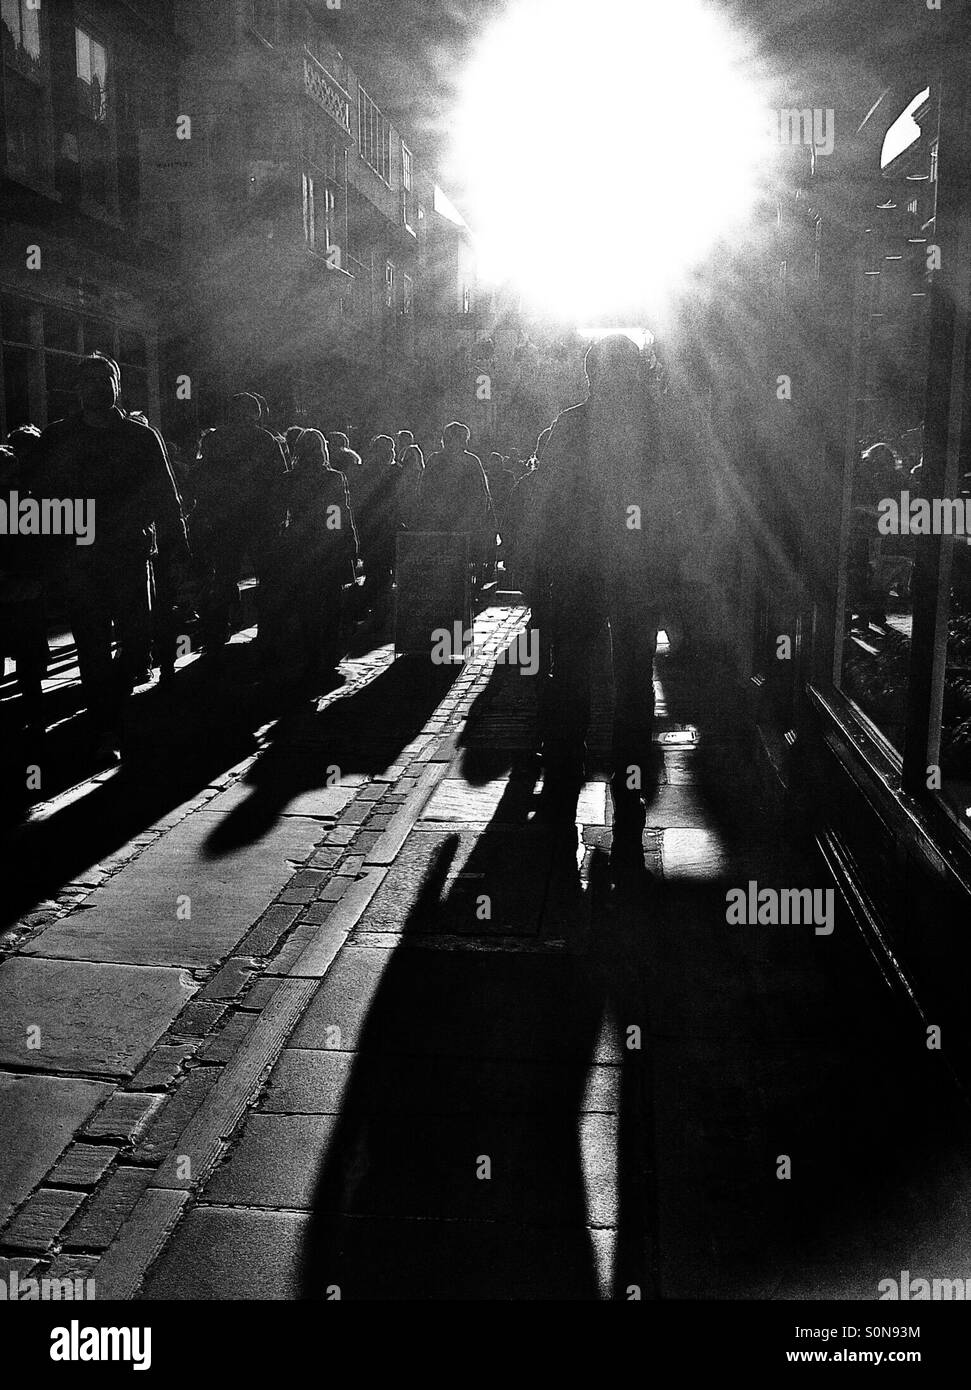 Silhouettes of people walking along cobbled street England UK - Stock Image